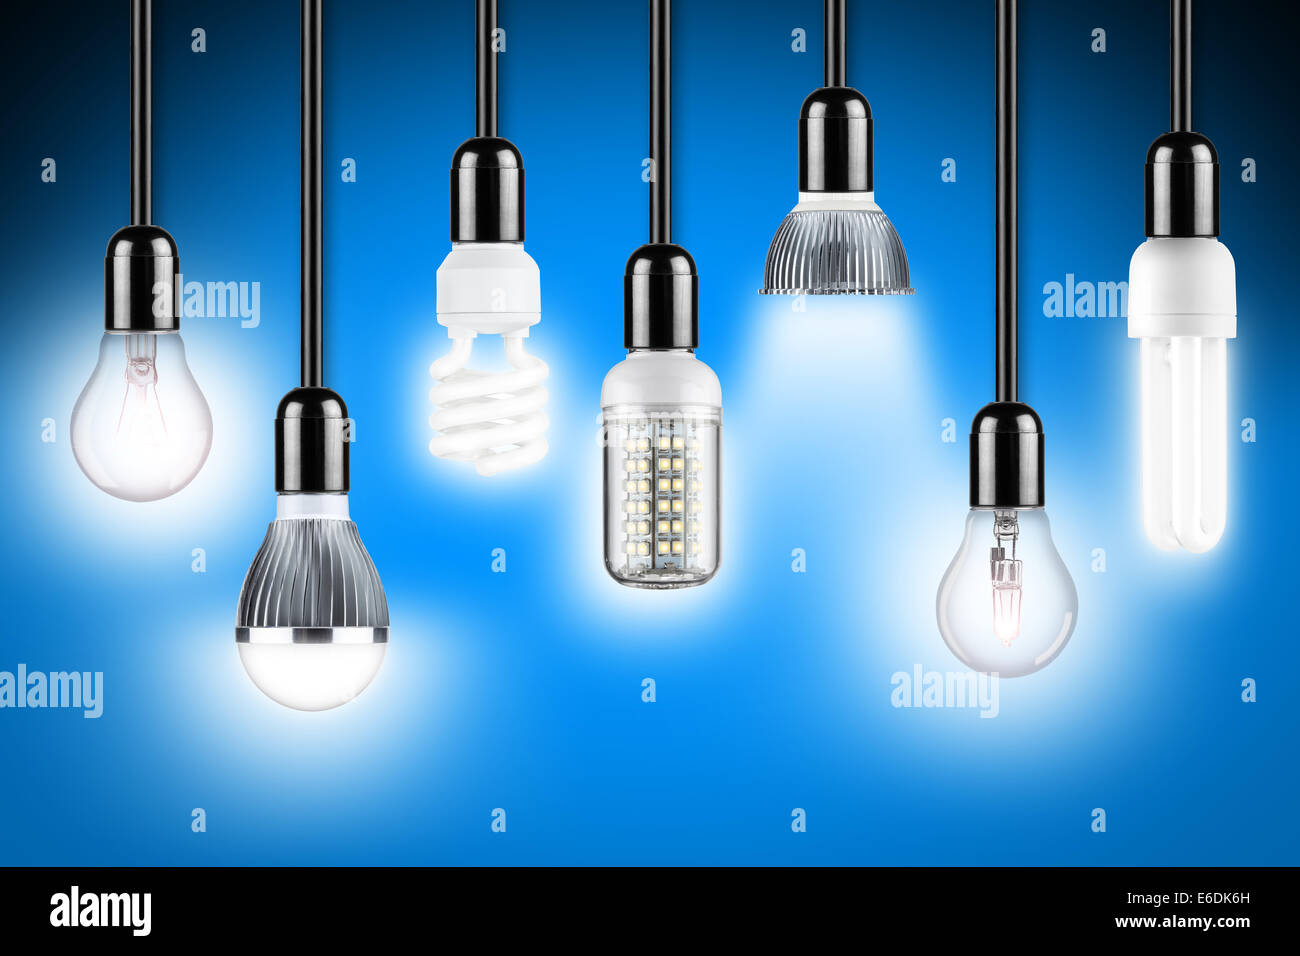 Row Of Different Types Of Glowing Light Bulbs Home Design Ideas